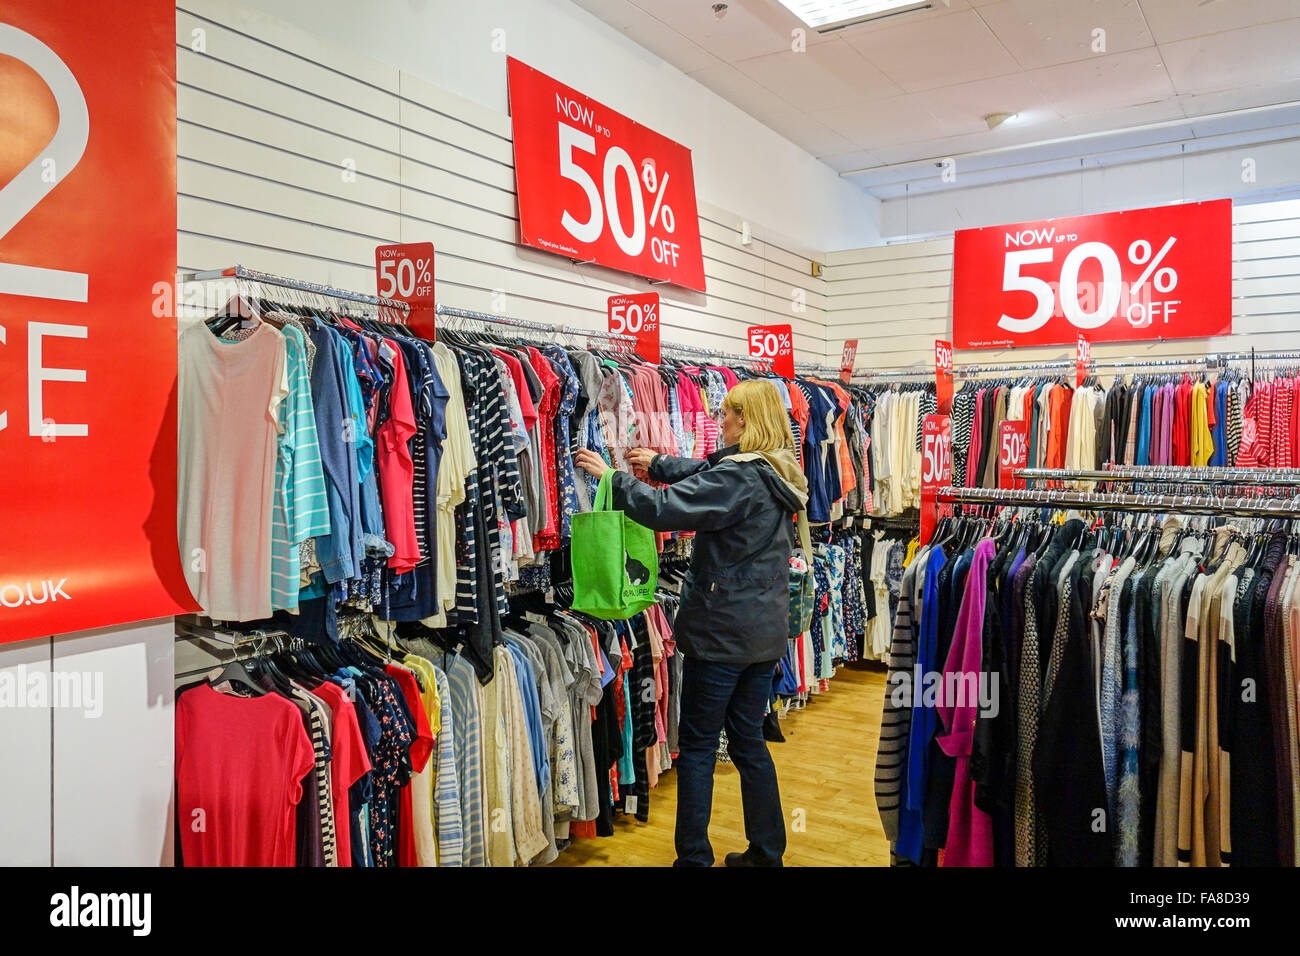 A woman looking at clothes in a sale hanging on rails in a shop with 50% off the prices Stock Photo